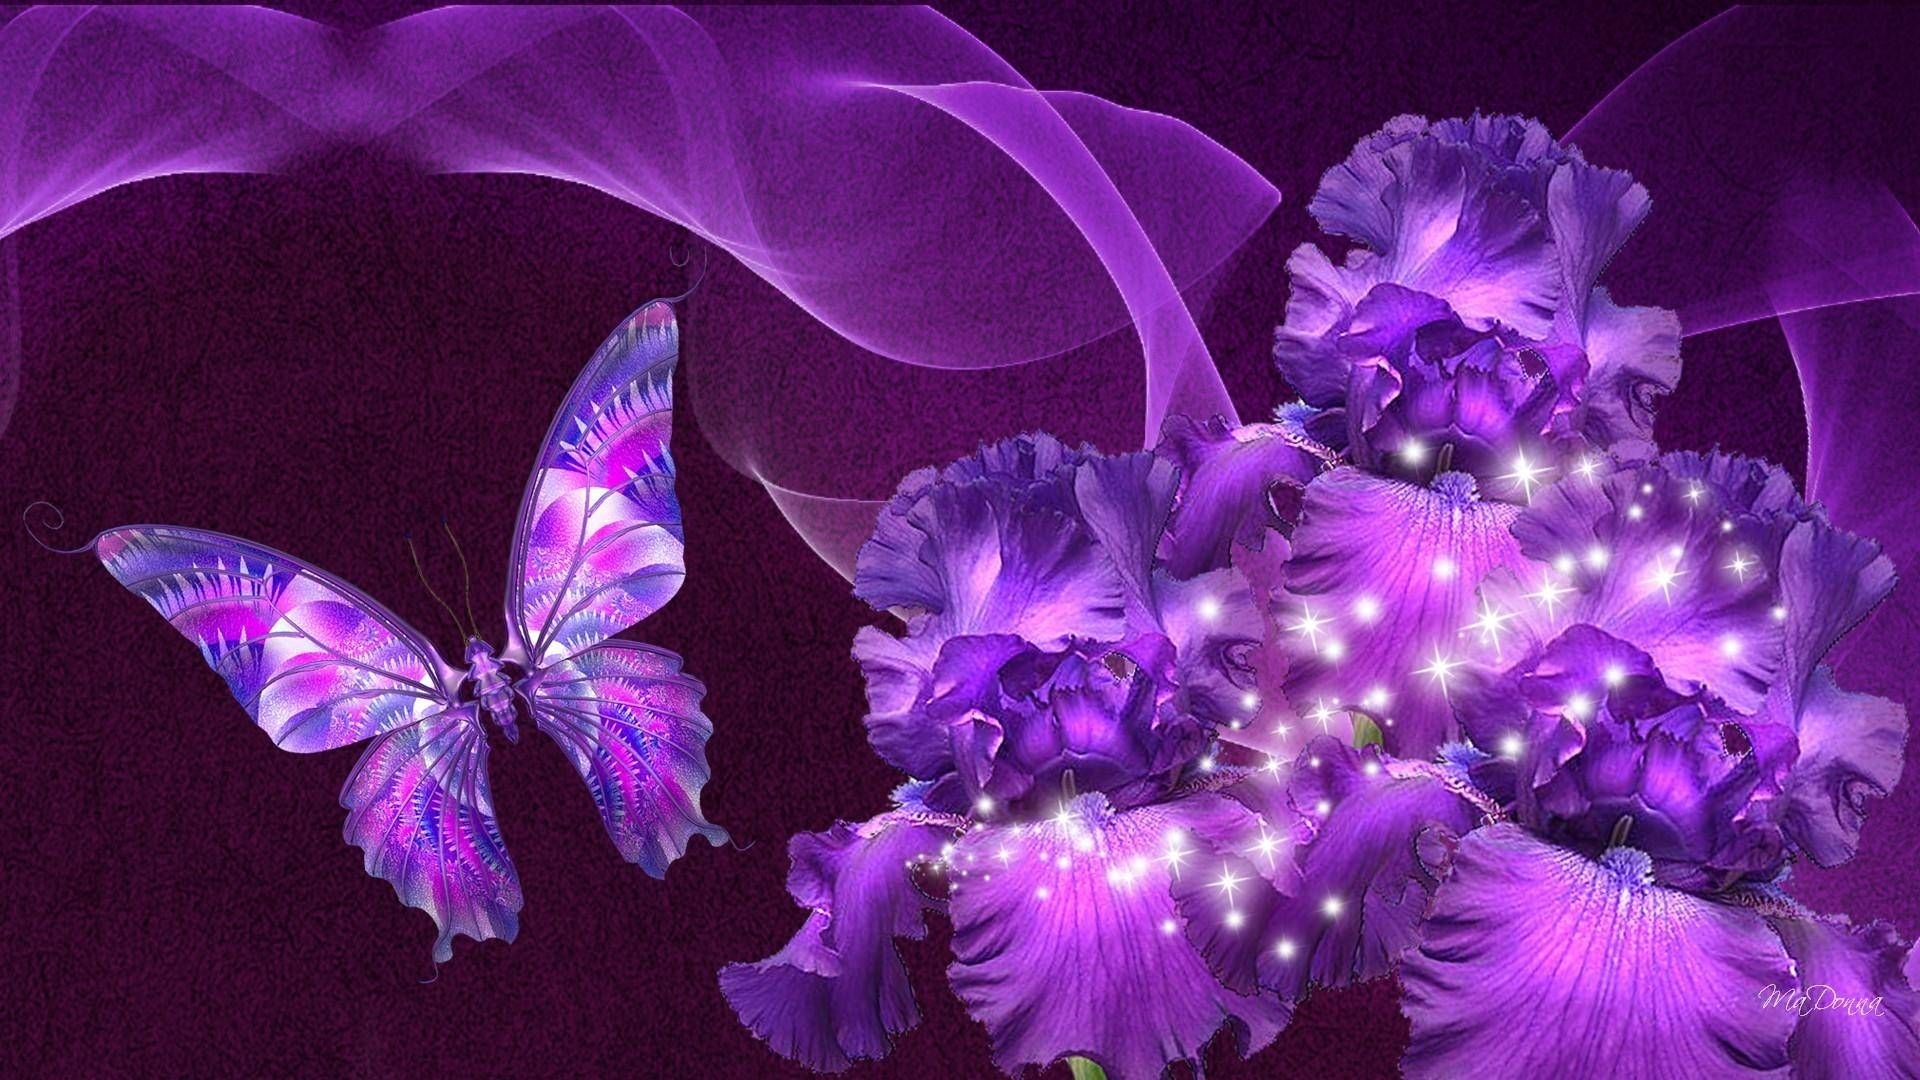 beautiful purple flowers images - bing images | butterflies